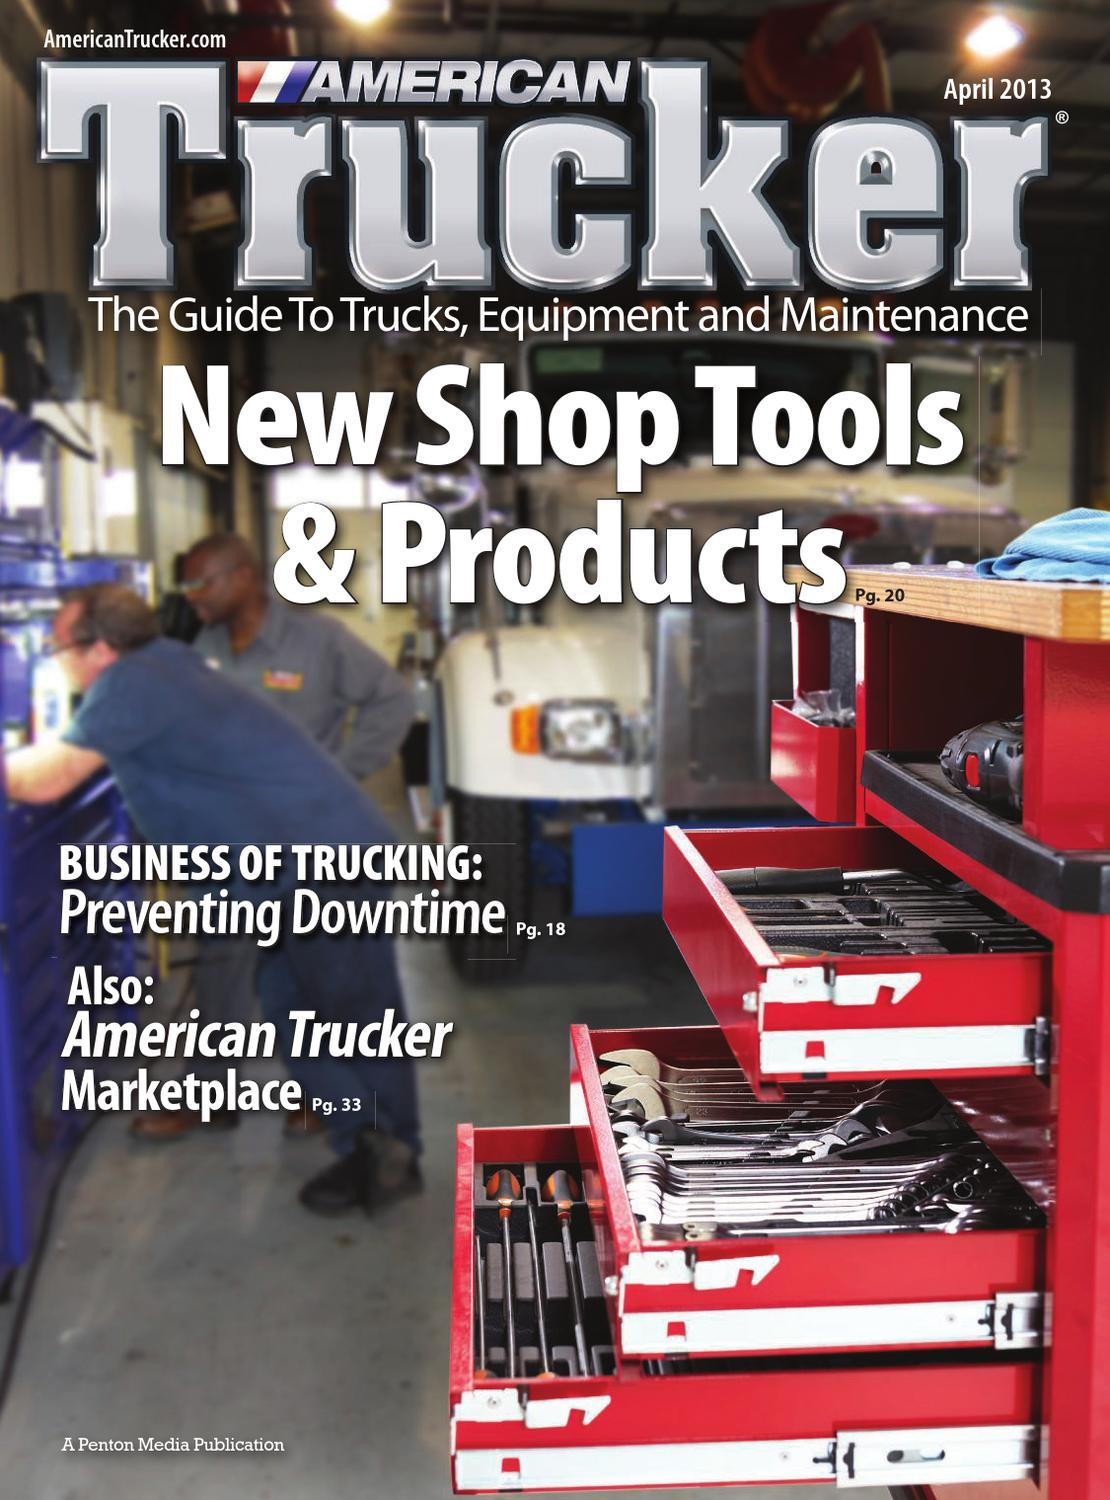 american trucker magazine - photo #30